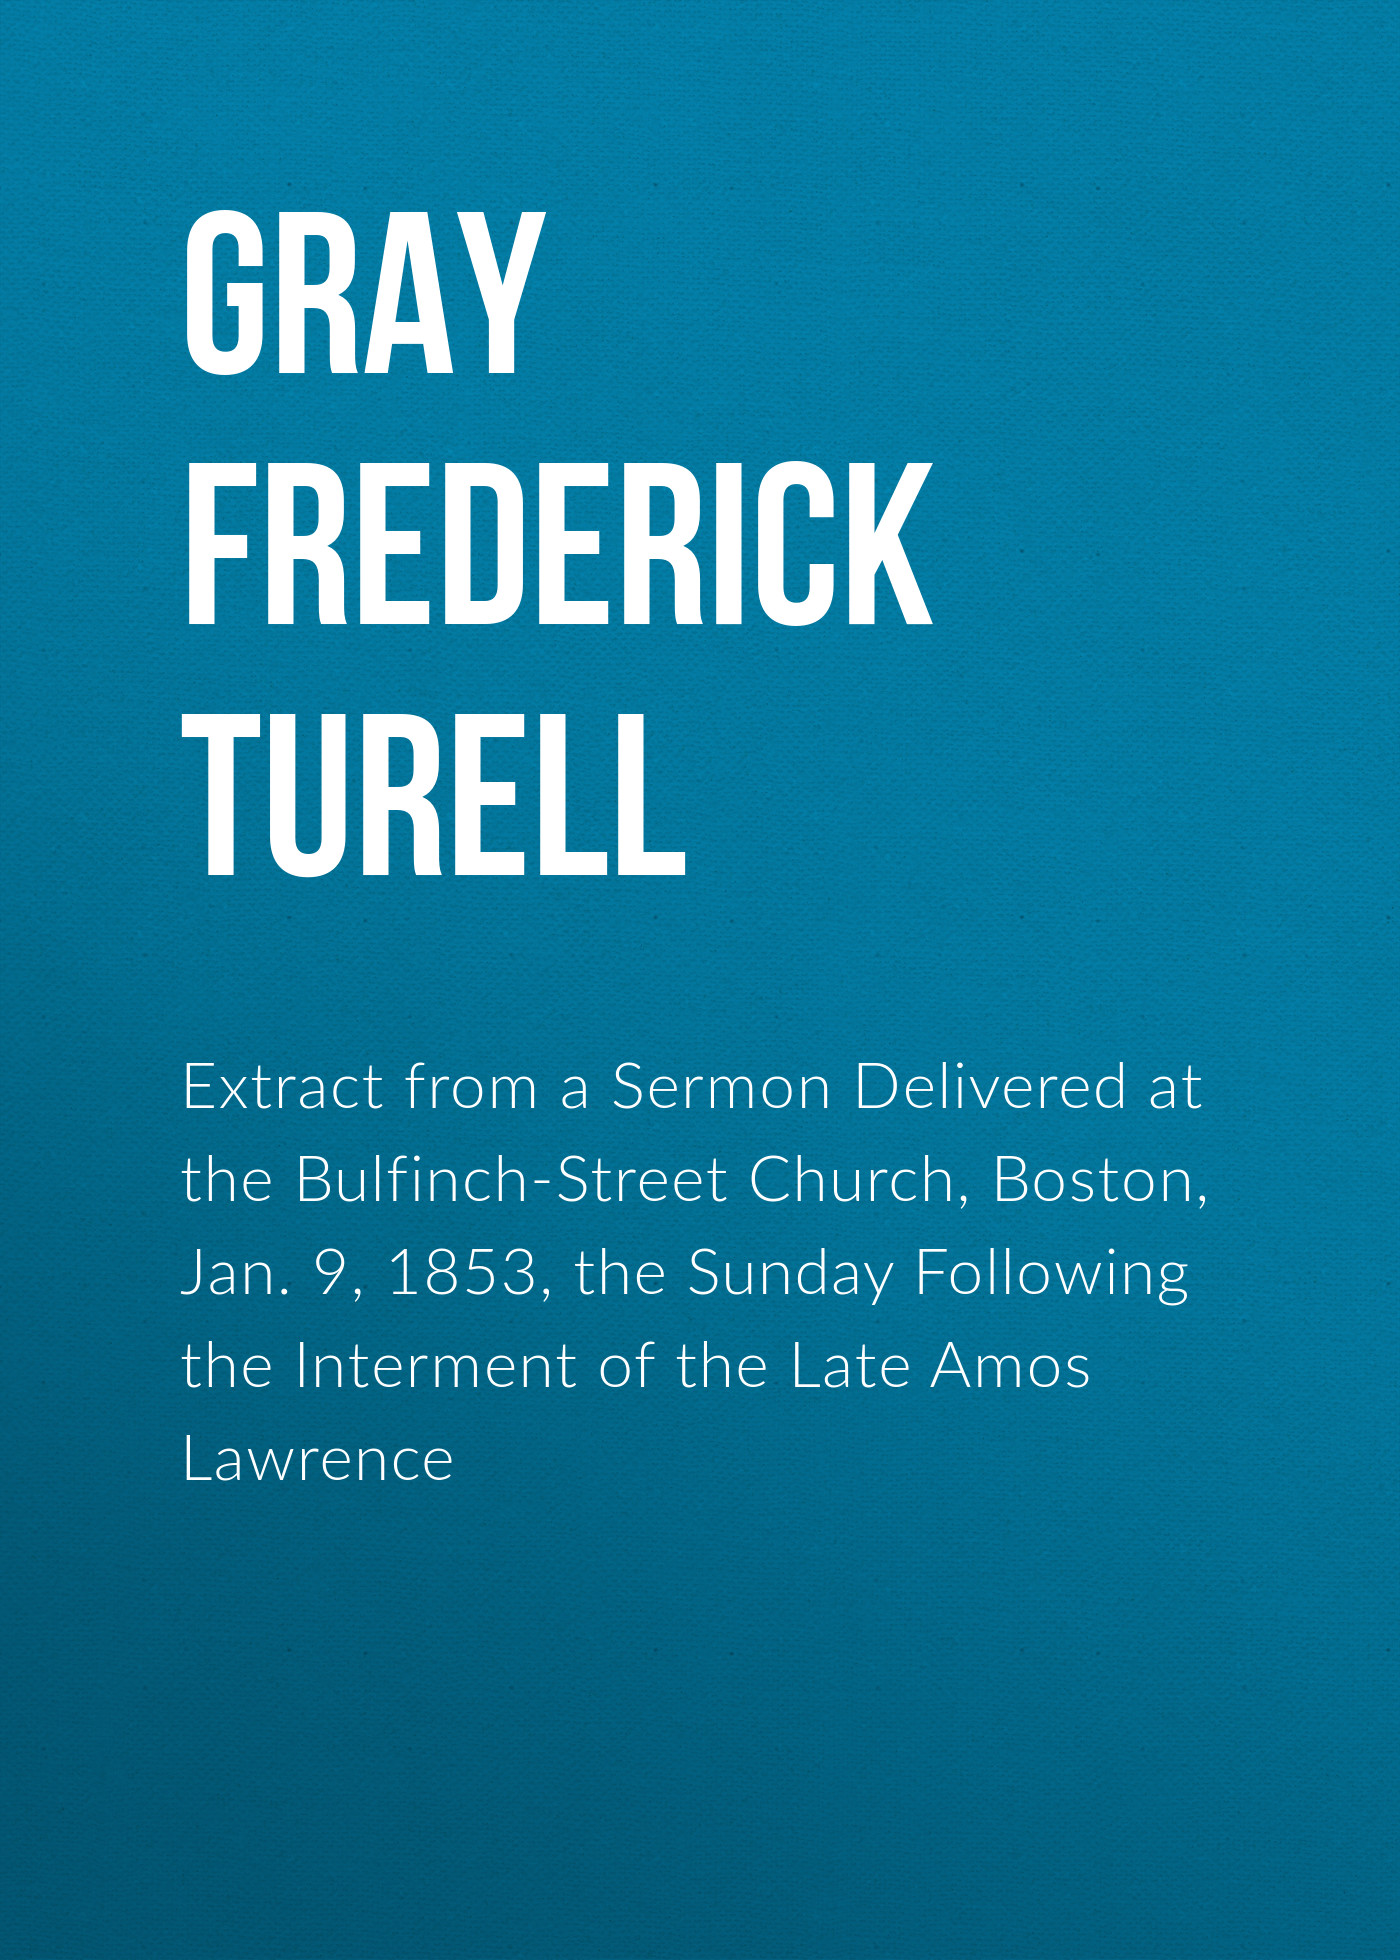 Gray Frederick Turell Extract from a Sermon Delivered at the Bulfinch-Street Church, Boston, Jan. 9, 1853, the Sunday Following the Interment of the Late Amos Lawrence джоэл коэн the boston camerata the schola cantorum of boston the shaker community of sabbathday lake maine joel cohen simple gifts